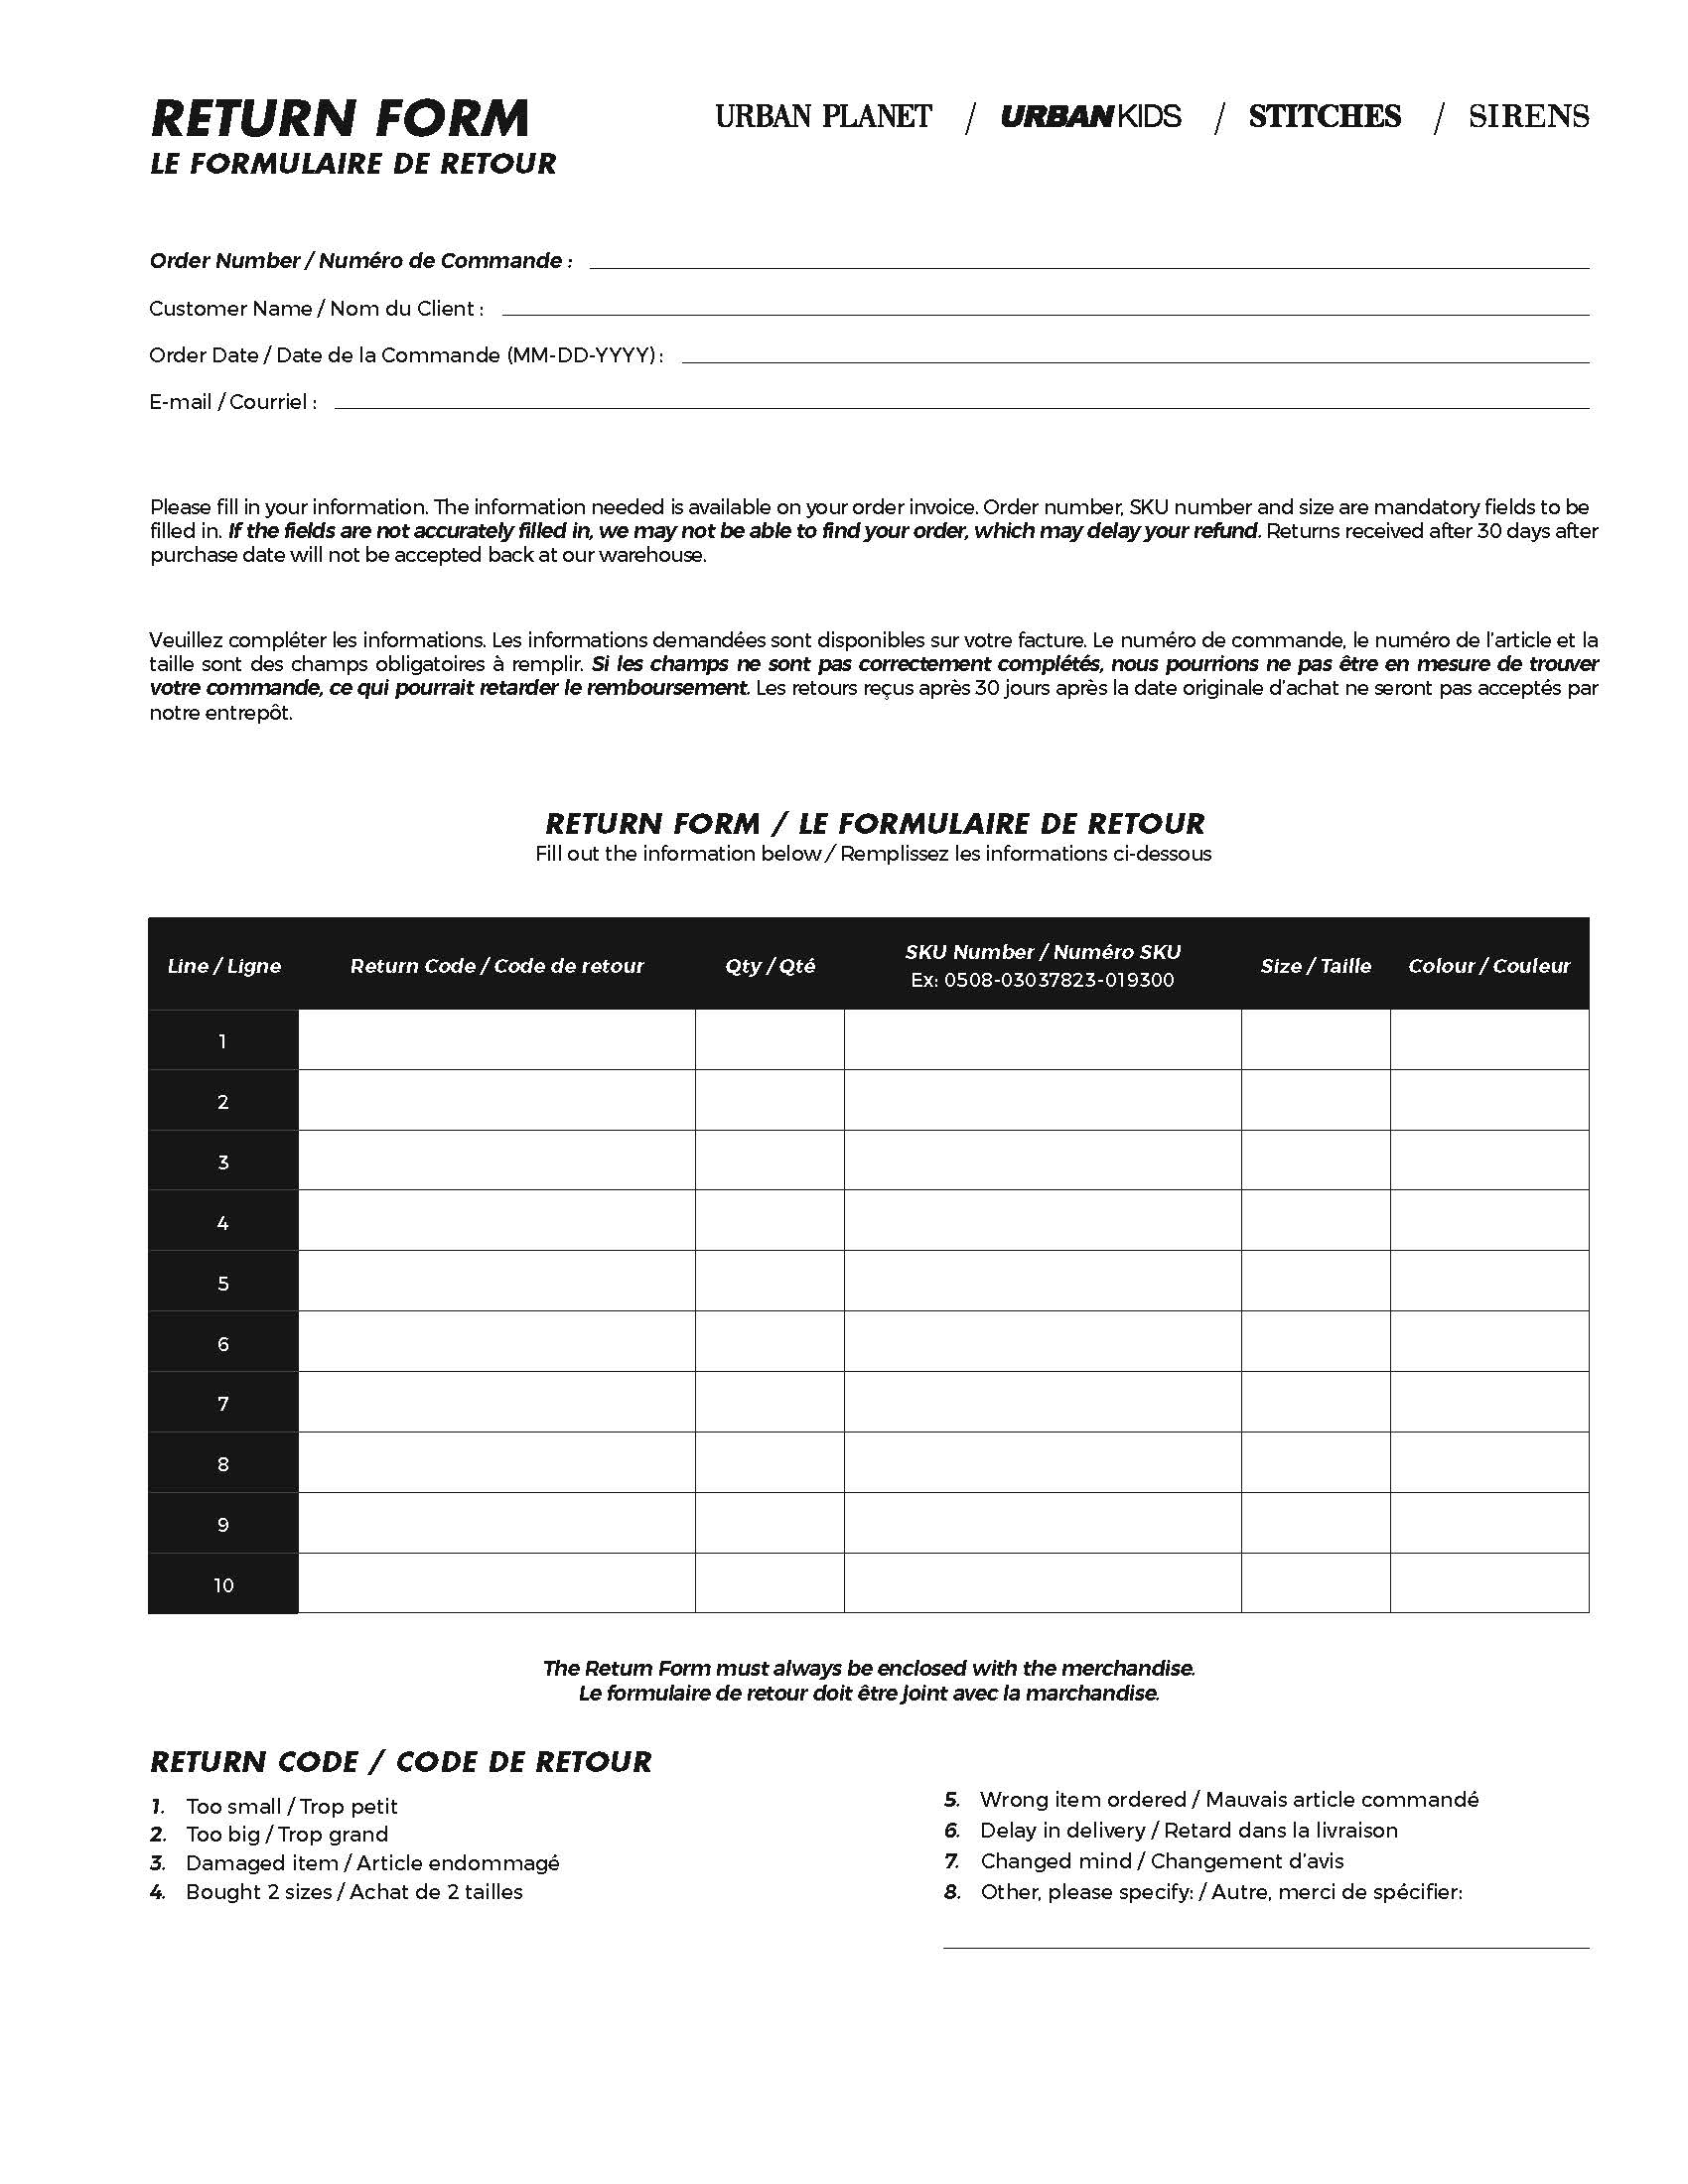 Urban Planet - Online Return Form